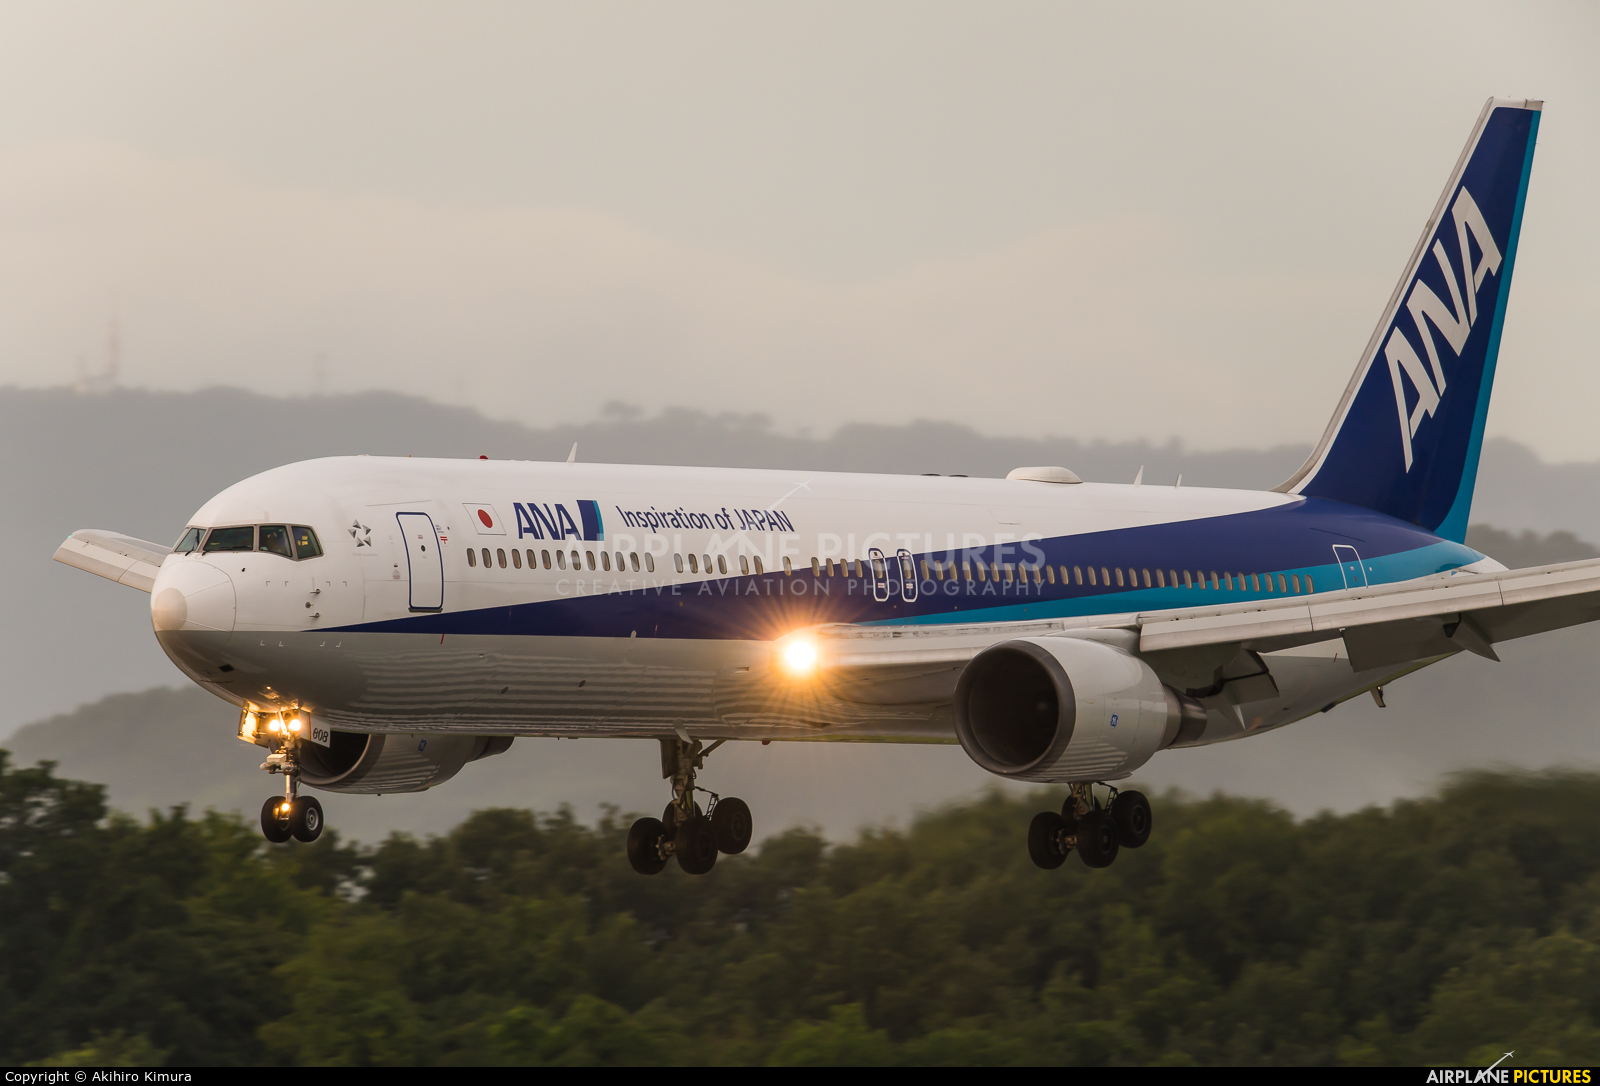 ANA - All Nippon Airways JA608A aircraft at Off Airport - Japan